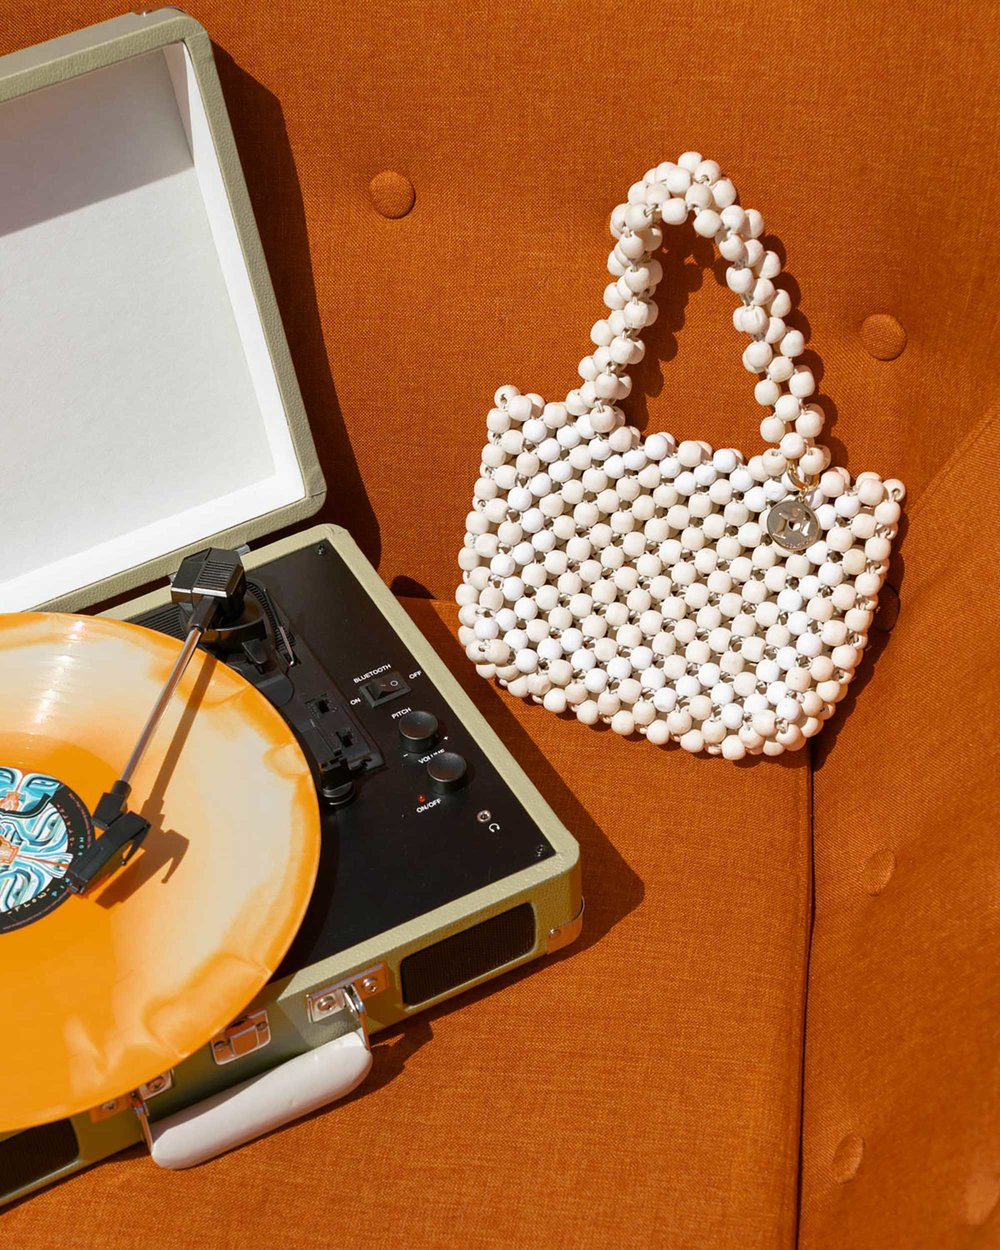 11 spring accessories to buy now:  THE ROW Nude Asymmetric Leather Sandals, Cult Gaia acrylic clutch , ROSANTICA beaded tote in Palm Springs | @sarahchristine - 6.jpeg